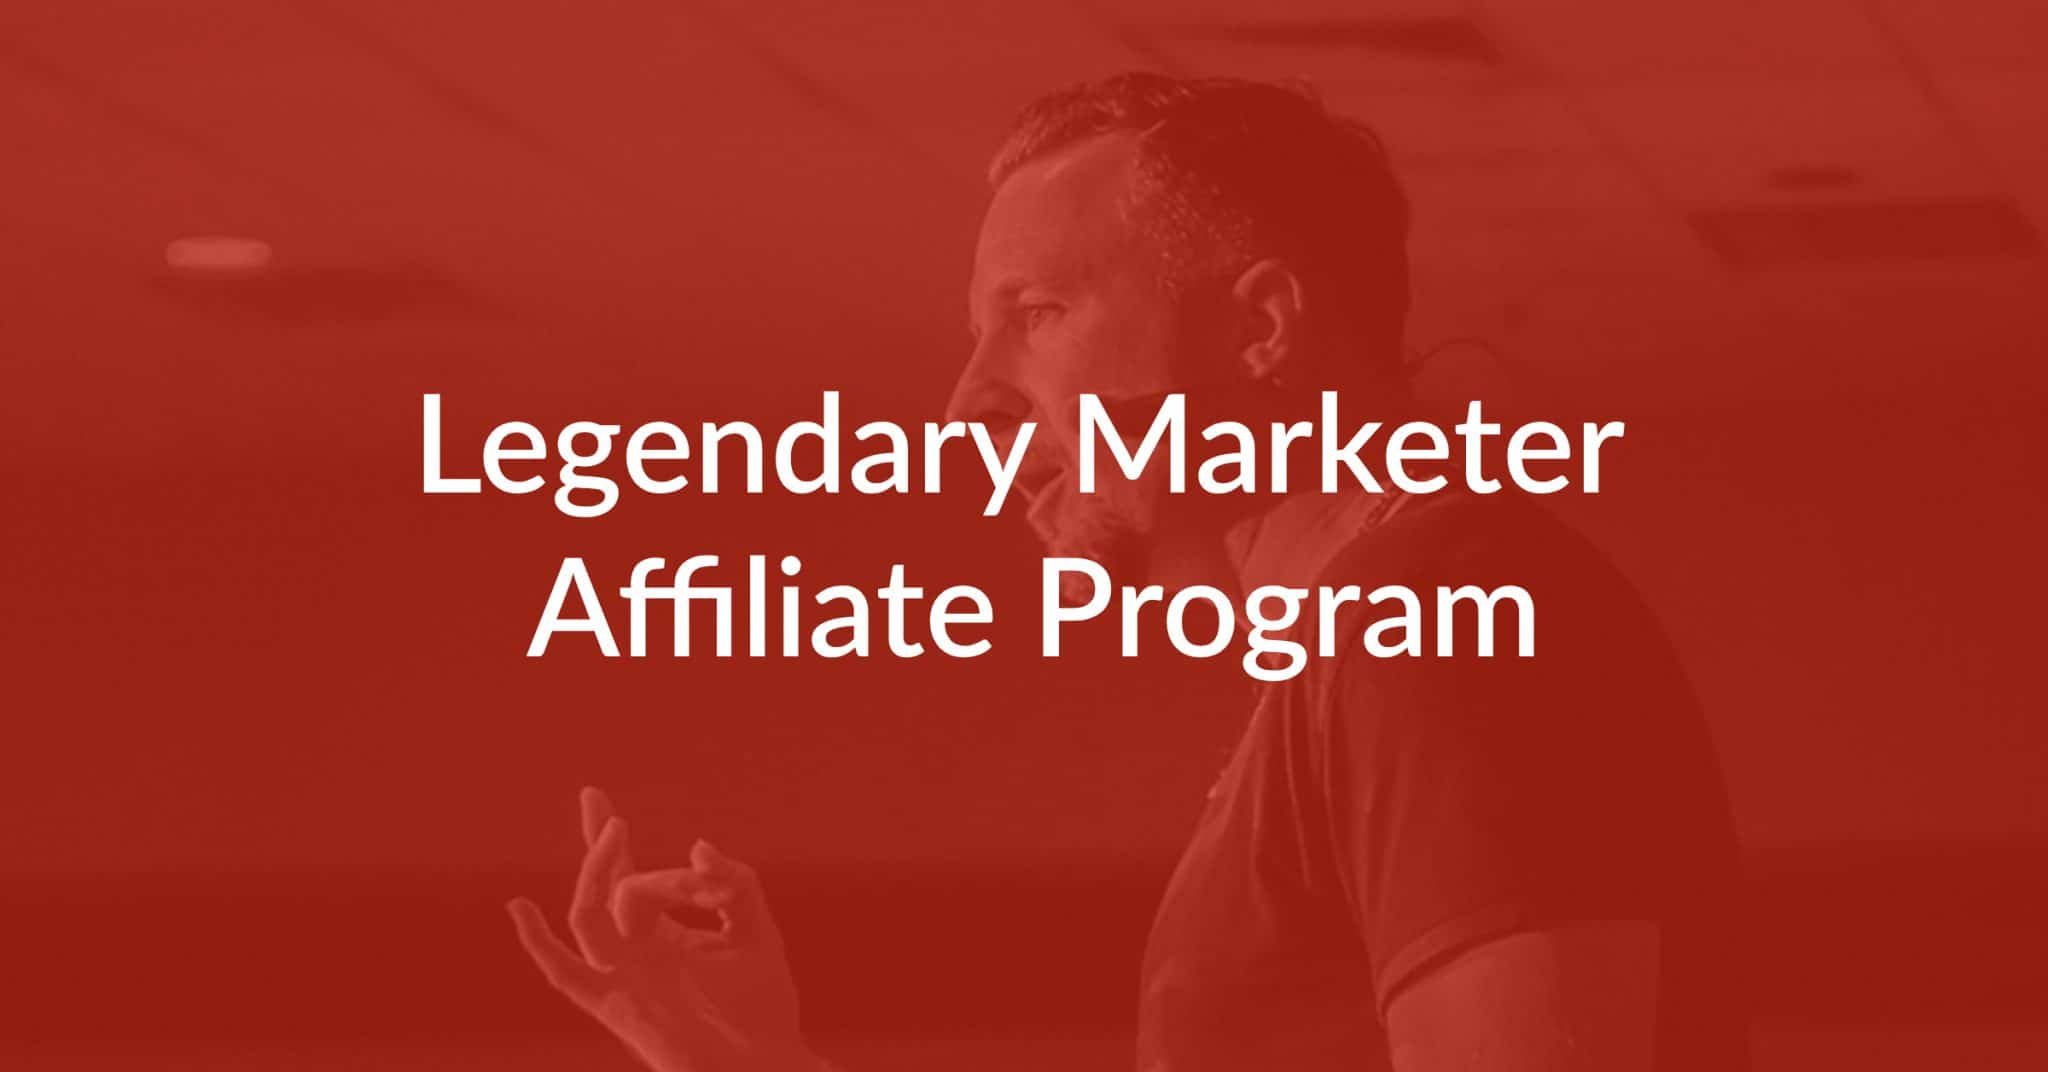 How To Promote The Legendary Marketer Affiliate Program